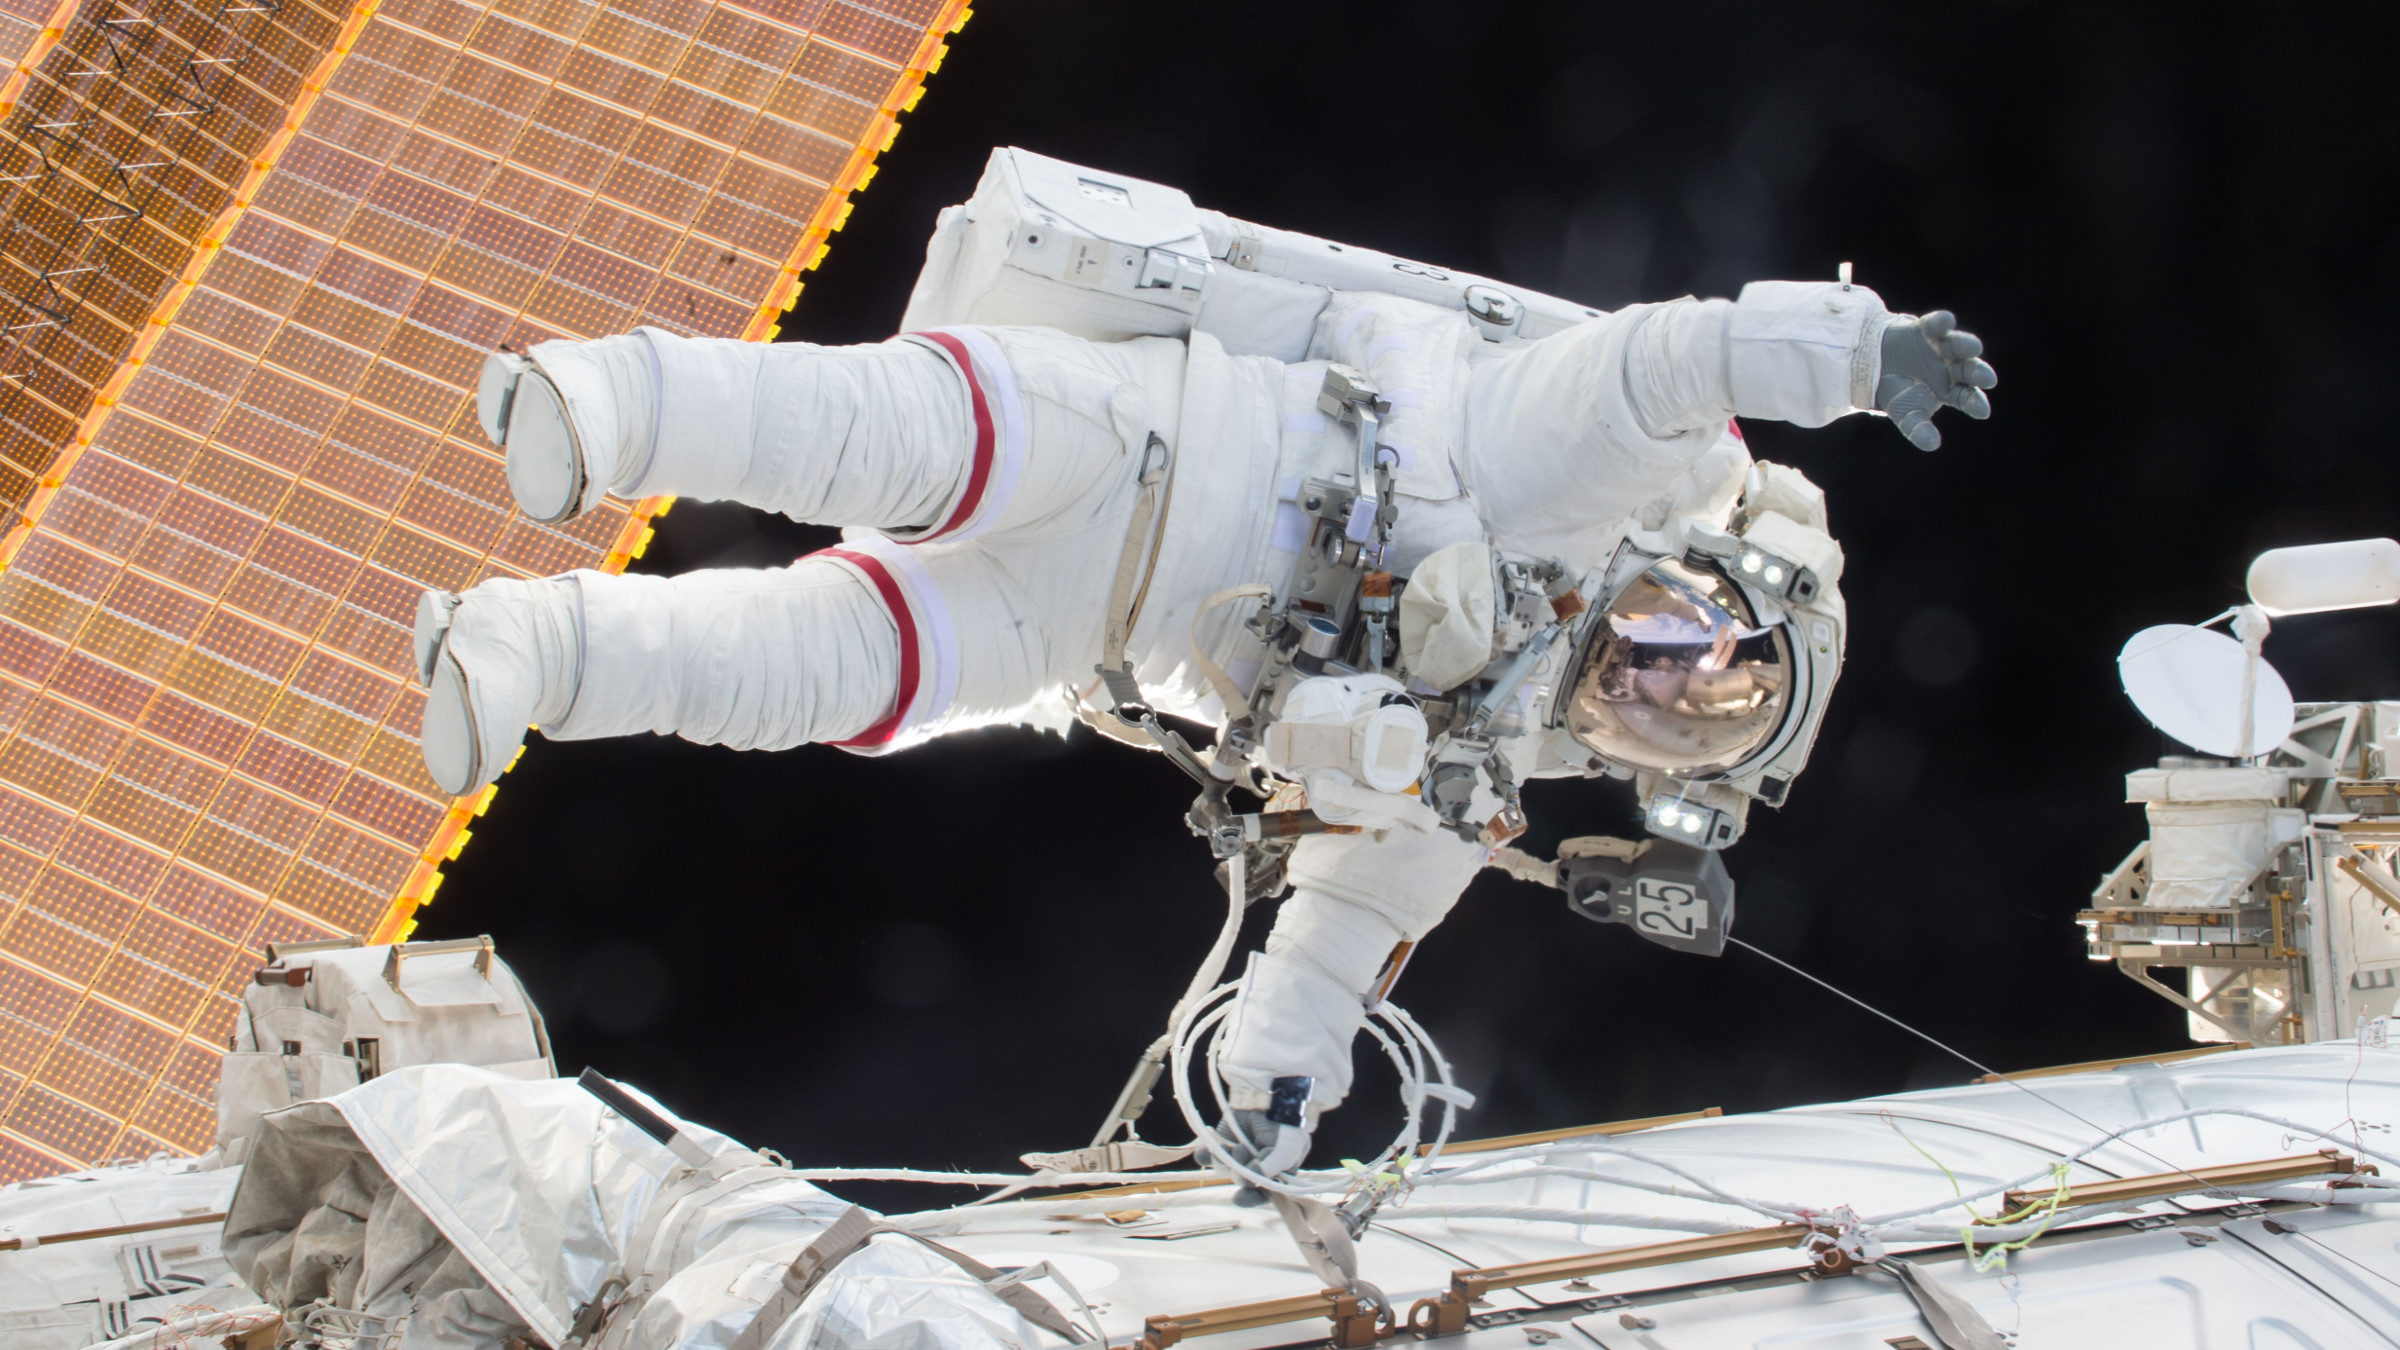 International Space Station Expedition 46 Commander Scott Kelly during a spacewalk, in which Kelly and Flight Engineer Tim Kopra successfully moved the International Space Station's mobile transporter rail car ahead of a docking of a Russian cargo supply spacecraft, December 21, 2015. After quickly completing their primary objective for the spacewalk, Kelly and Kopra tackled several additional tasks. Kelly routed a second pair of cables in preparation for International Docking Adapter installment work to support U.S. commercial crew vehicles. Kopra routed an Ethernet cable that ultimately will connect to a Russian laboratory module. They also retrieved tools that had been in a toolbox on the outside of the station, so they can be used for future work.